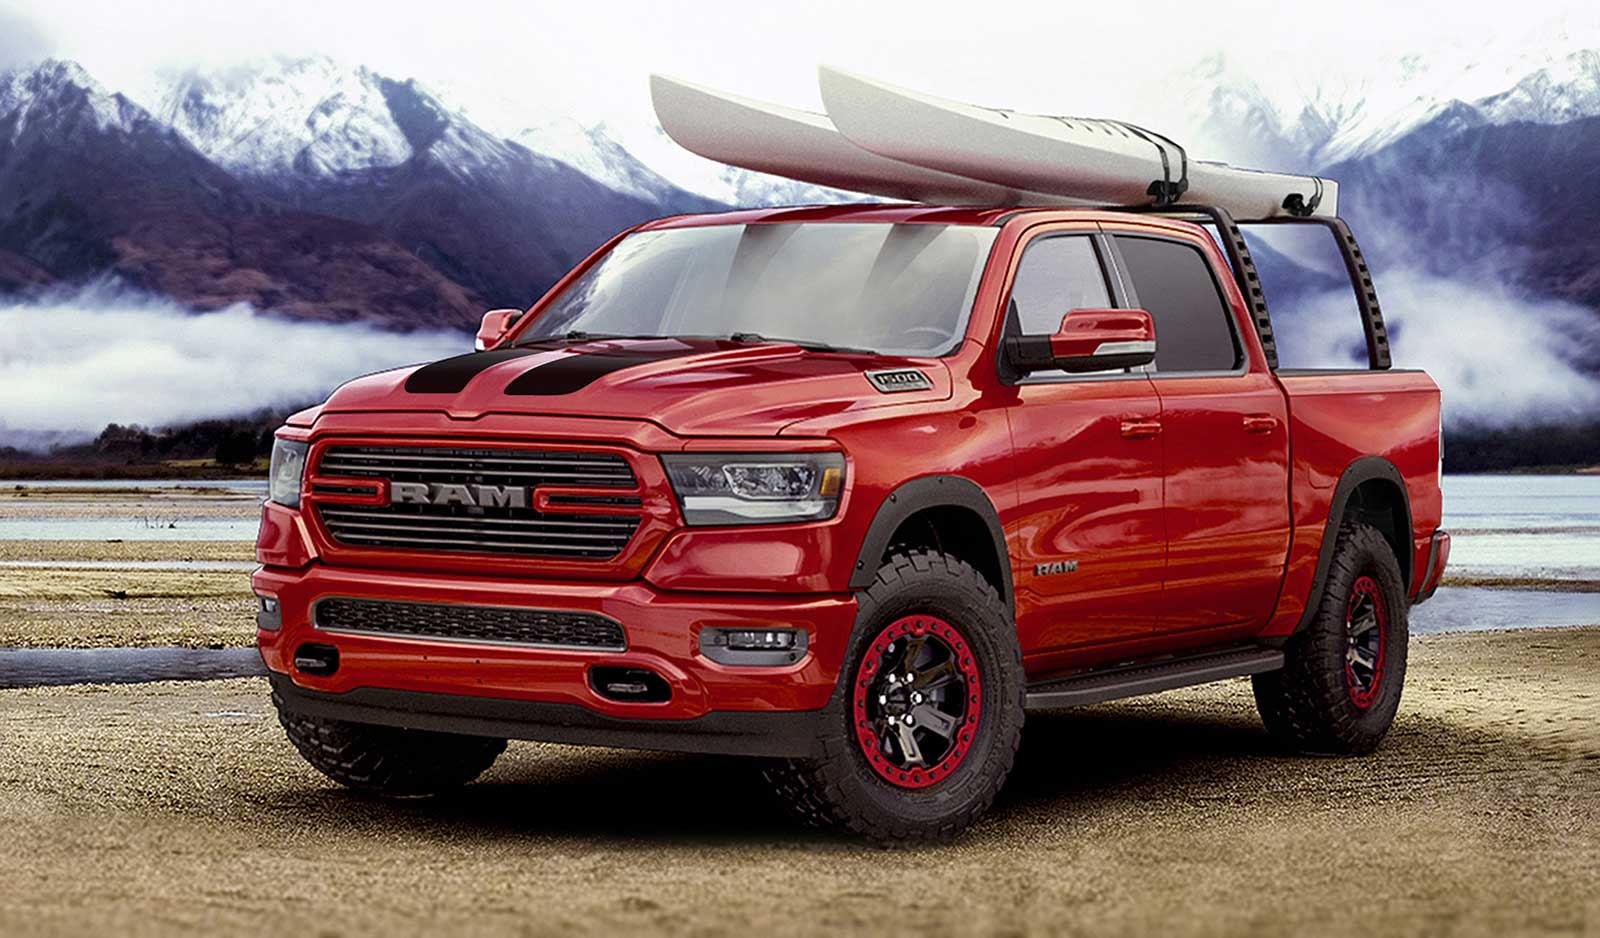 2019 Ram 1500 Gussied Up With 200-Plus Mopar Parts - Dodge ...